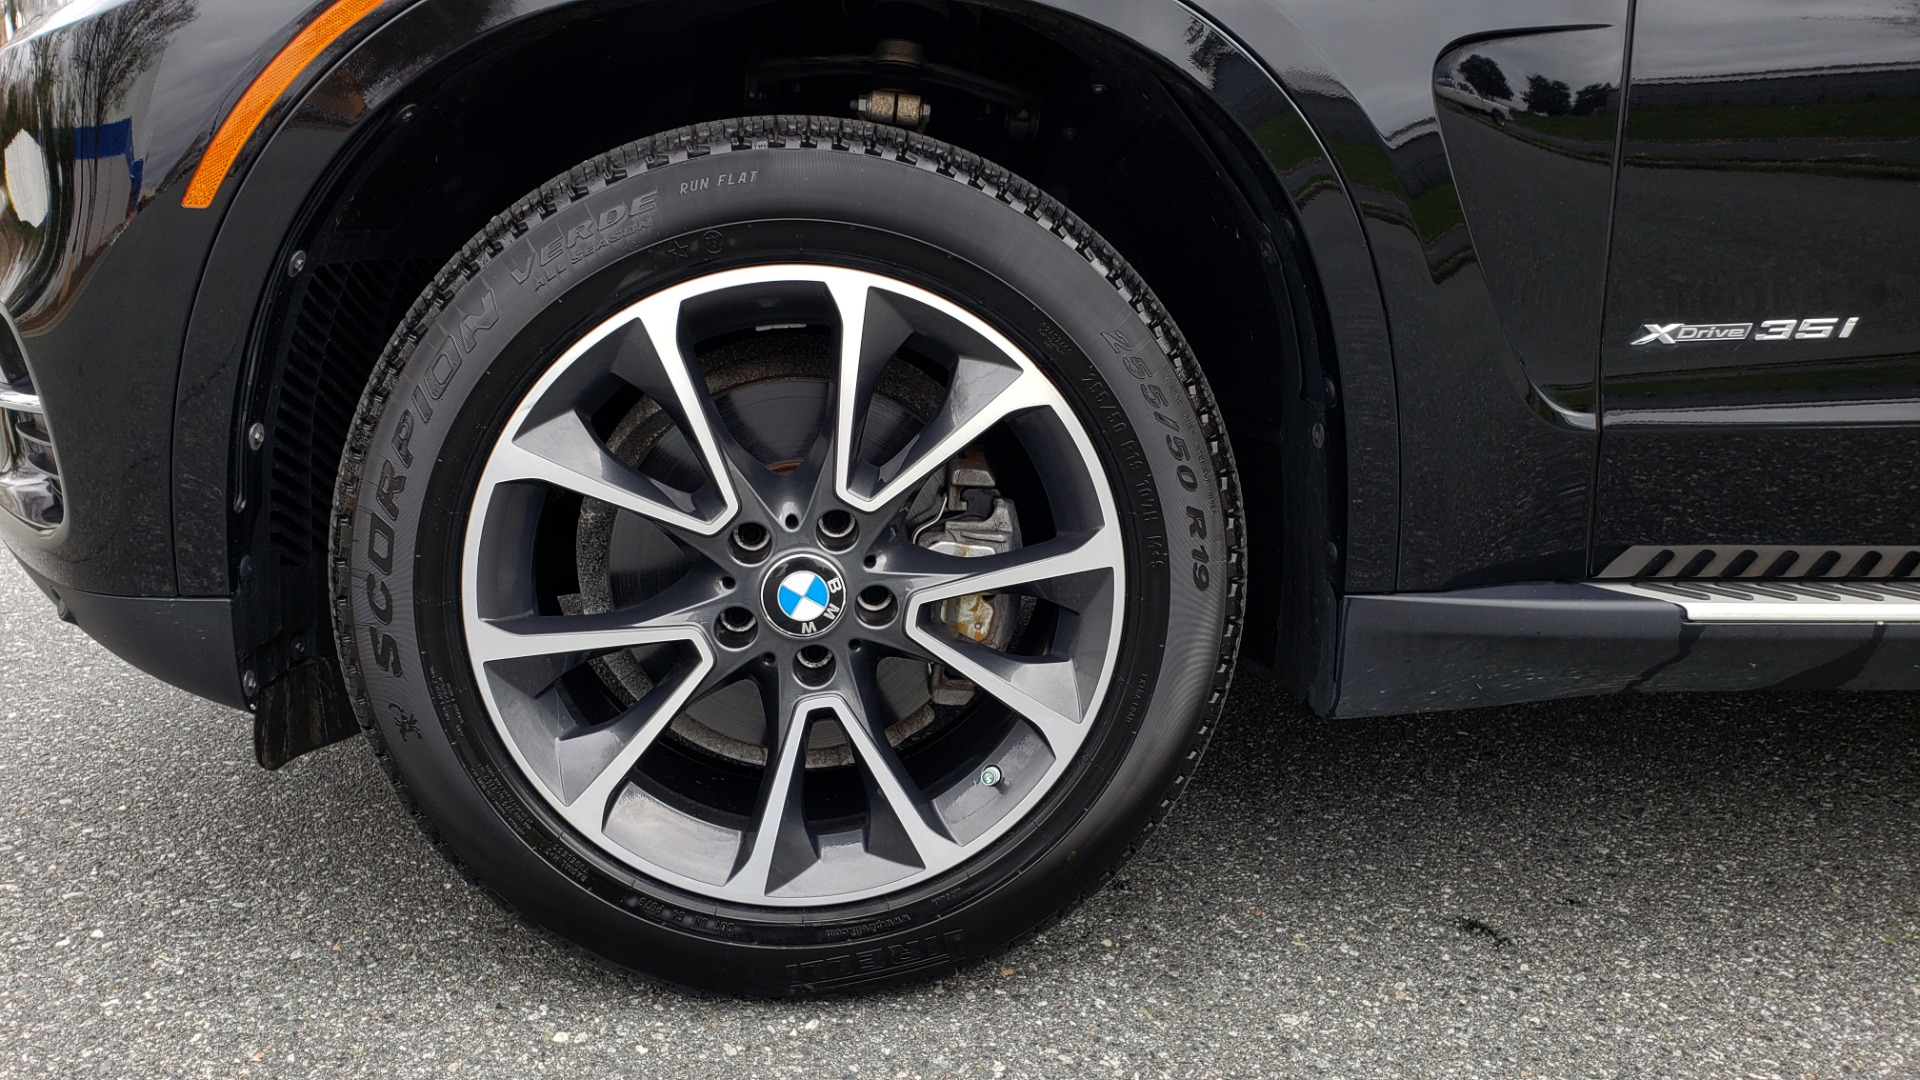 Used 2017 BMW X5 XDRIVE35I / PREM LUX PKG / DRVR ASST / CLD WTHR / APPLE CAR PLAY for sale Sold at Formula Imports in Charlotte NC 28227 82